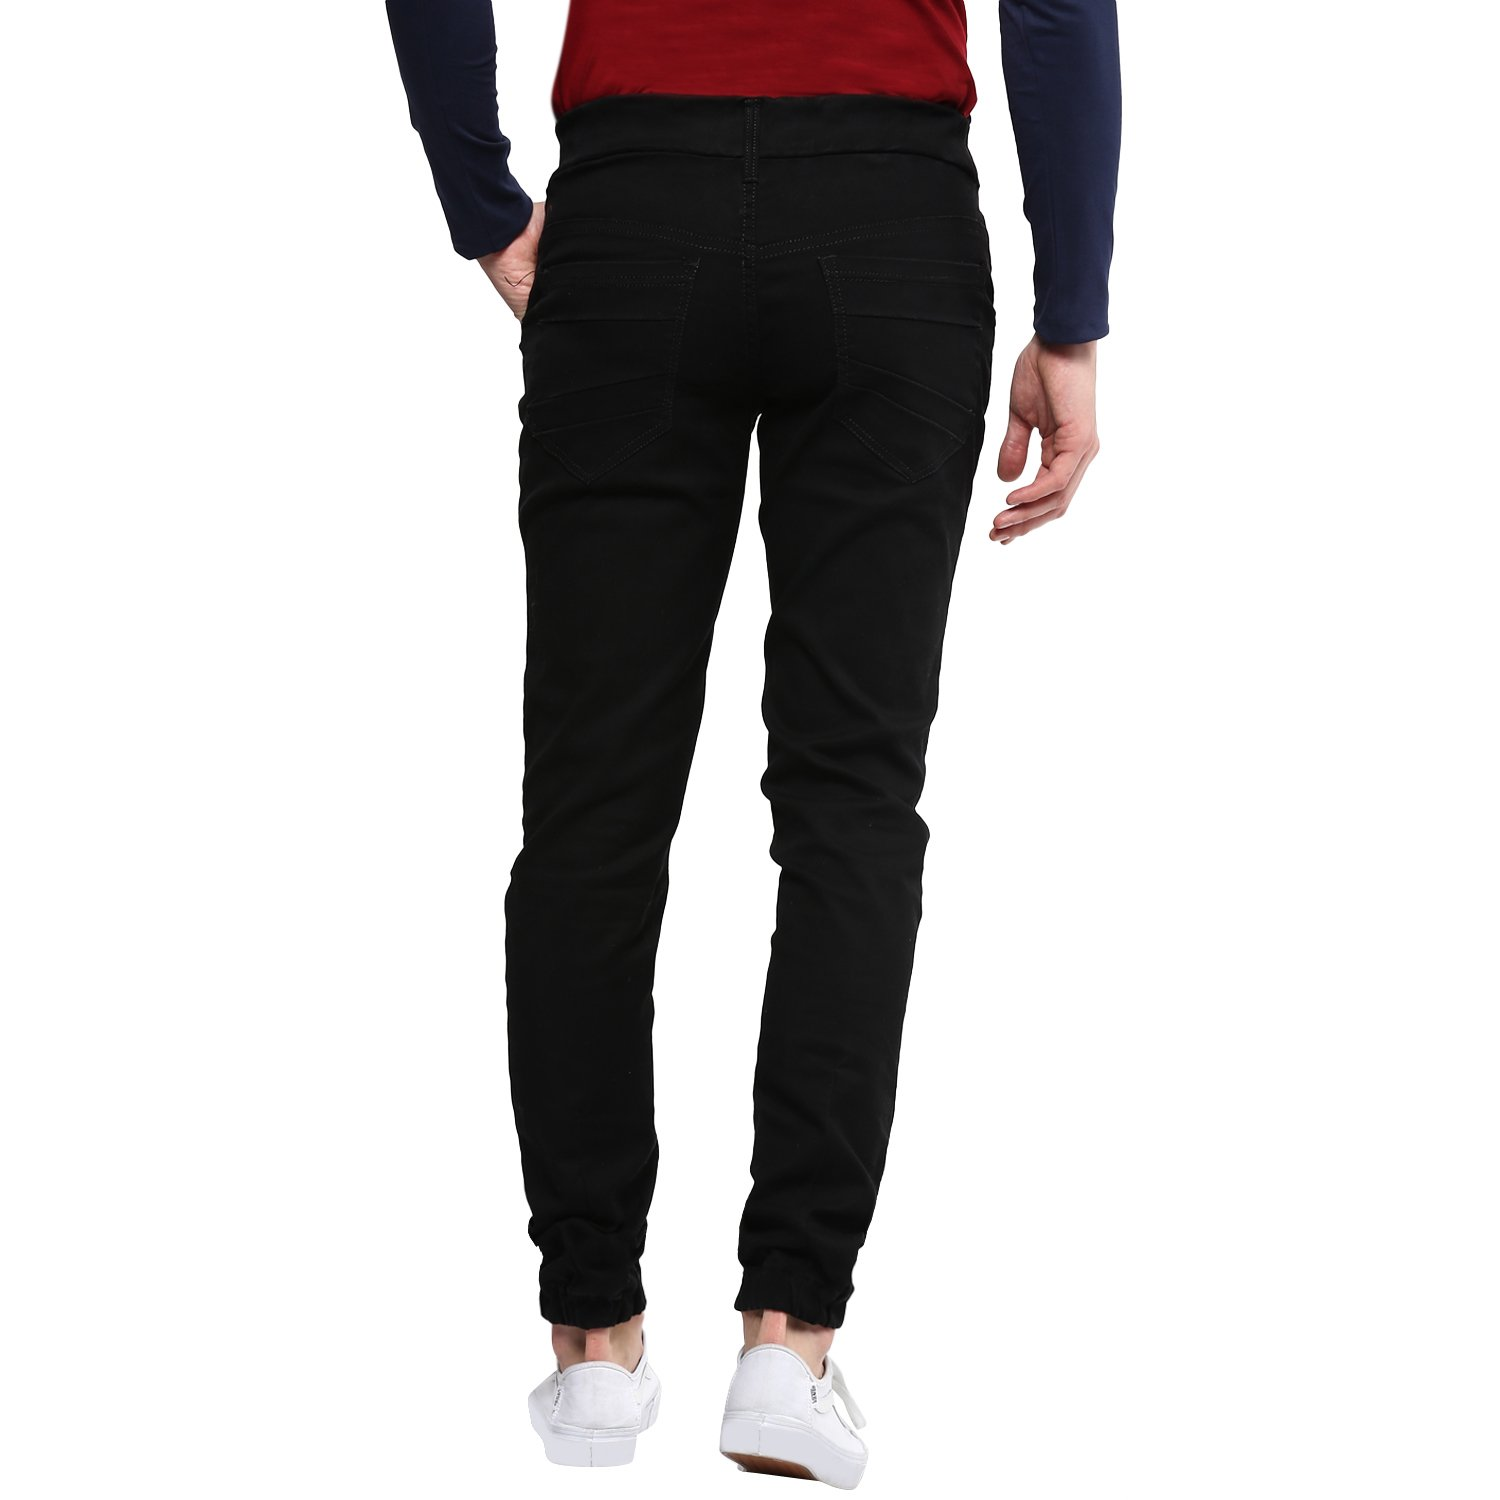 7d1799aa3a1 Urbano Fashion Men s Black Slim Fit Stretch Jogger Jeans  Amazon.in   Clothing   Accessories